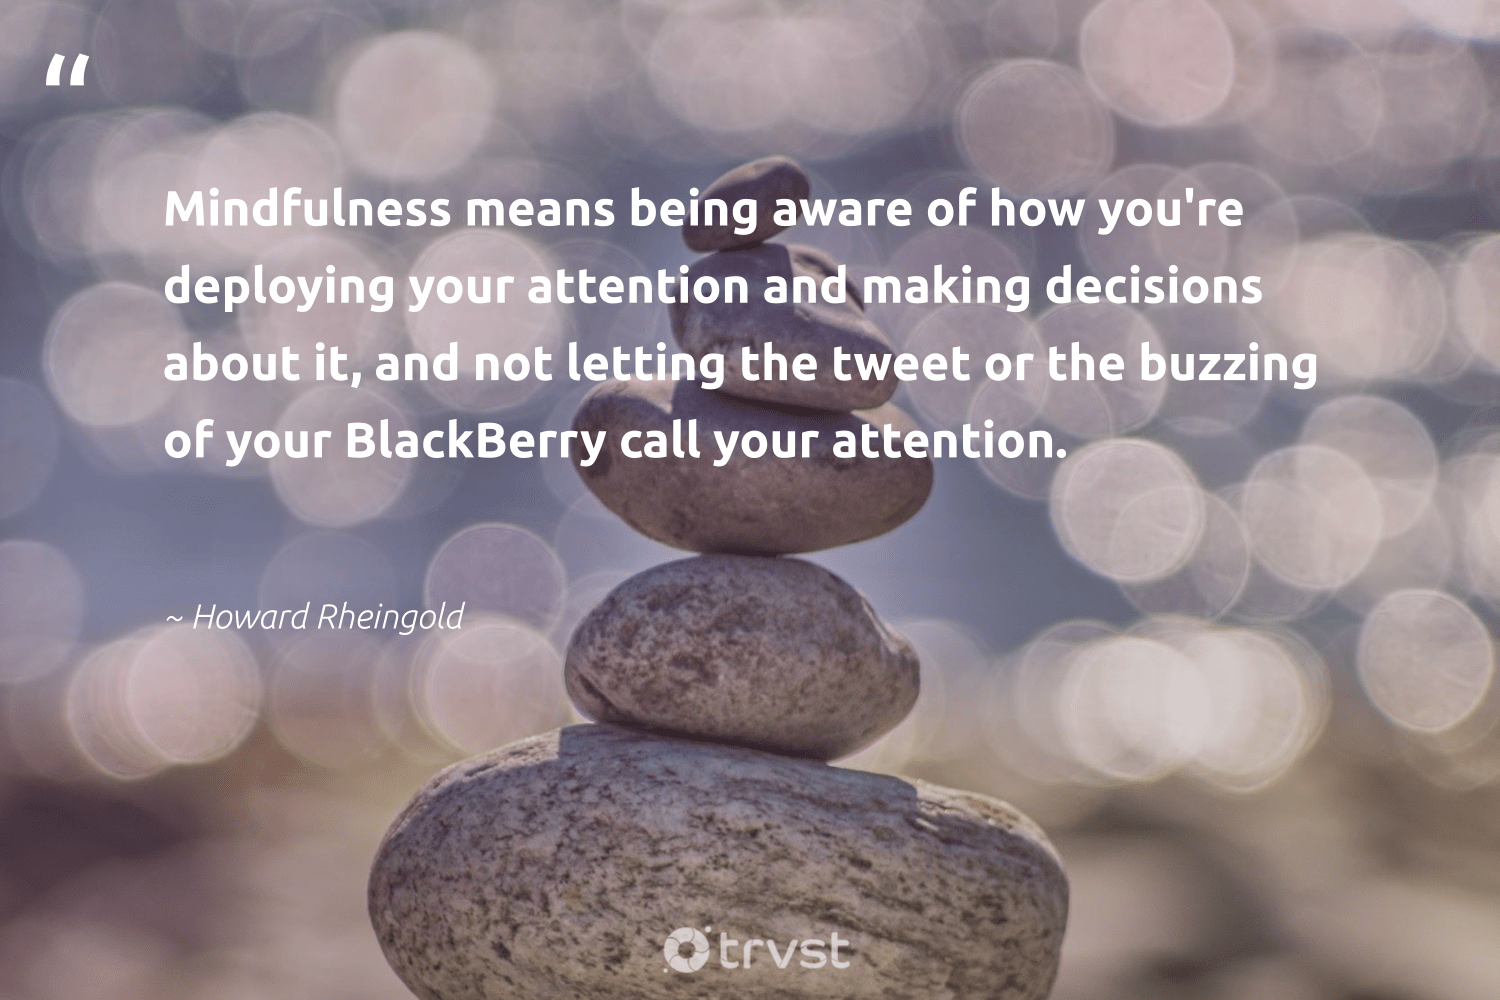 """""""Mindfulness means being aware of how you're deploying your attention and making decisions about it, and not letting the tweet or the buzzing of your BlackBerry call your attention.""""  - Howard Rheingold #trvst #quotes #mindfulness #creativemindset #happiness #changemakers #ecoconscious #meditation #mindset #health #bethechange #goals"""